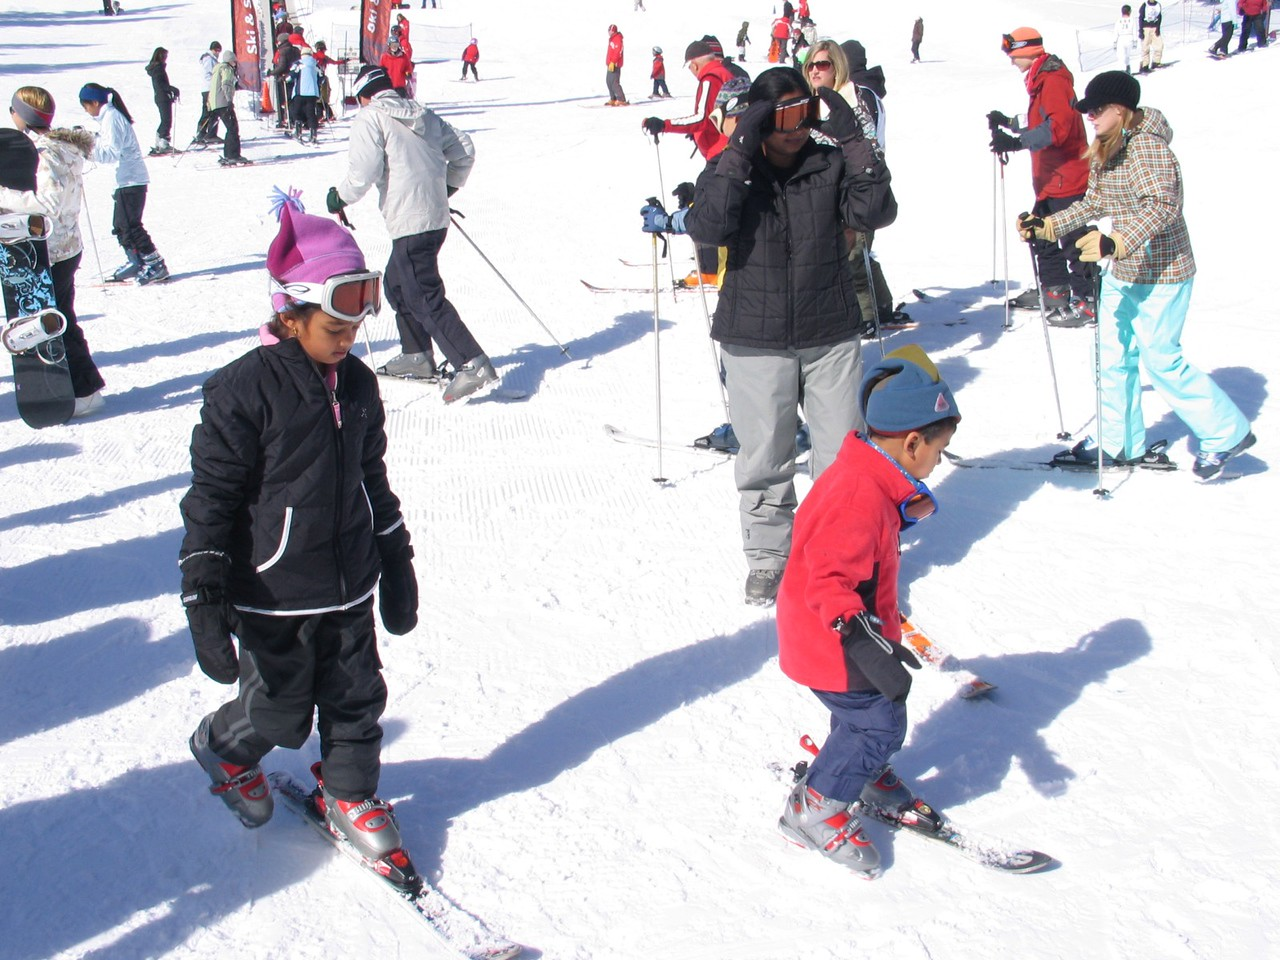 Vidya and the kids are playing around on one ski, just getting used to the feeling.